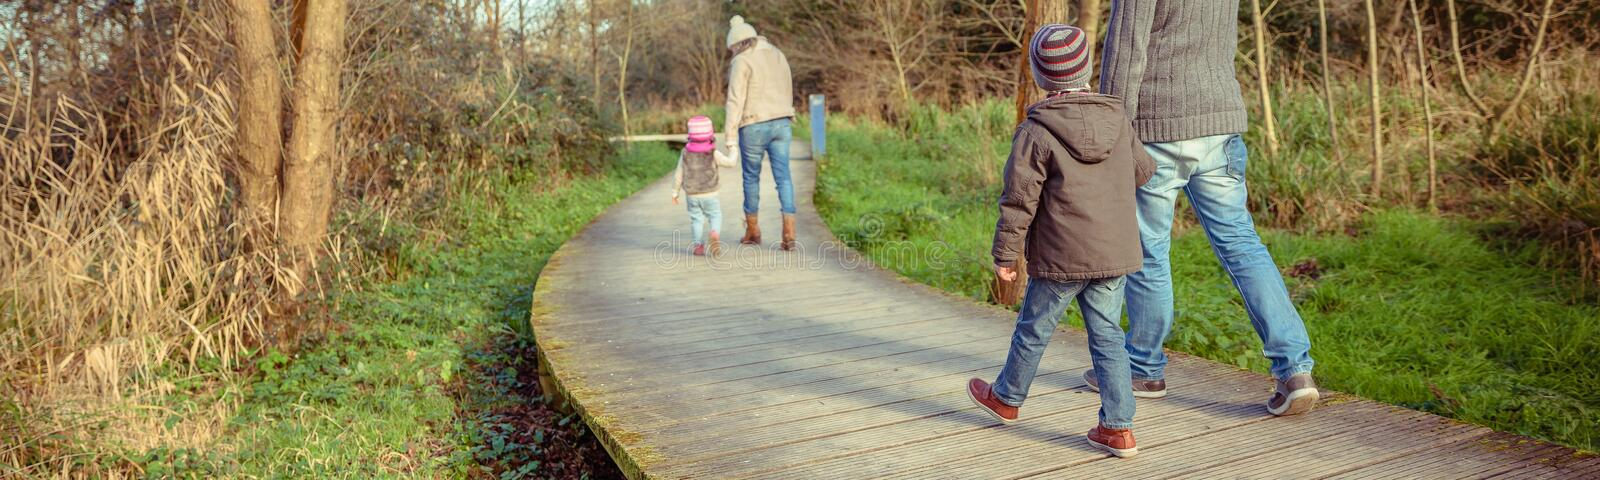 Family walking together holding hands in the forest stock photography